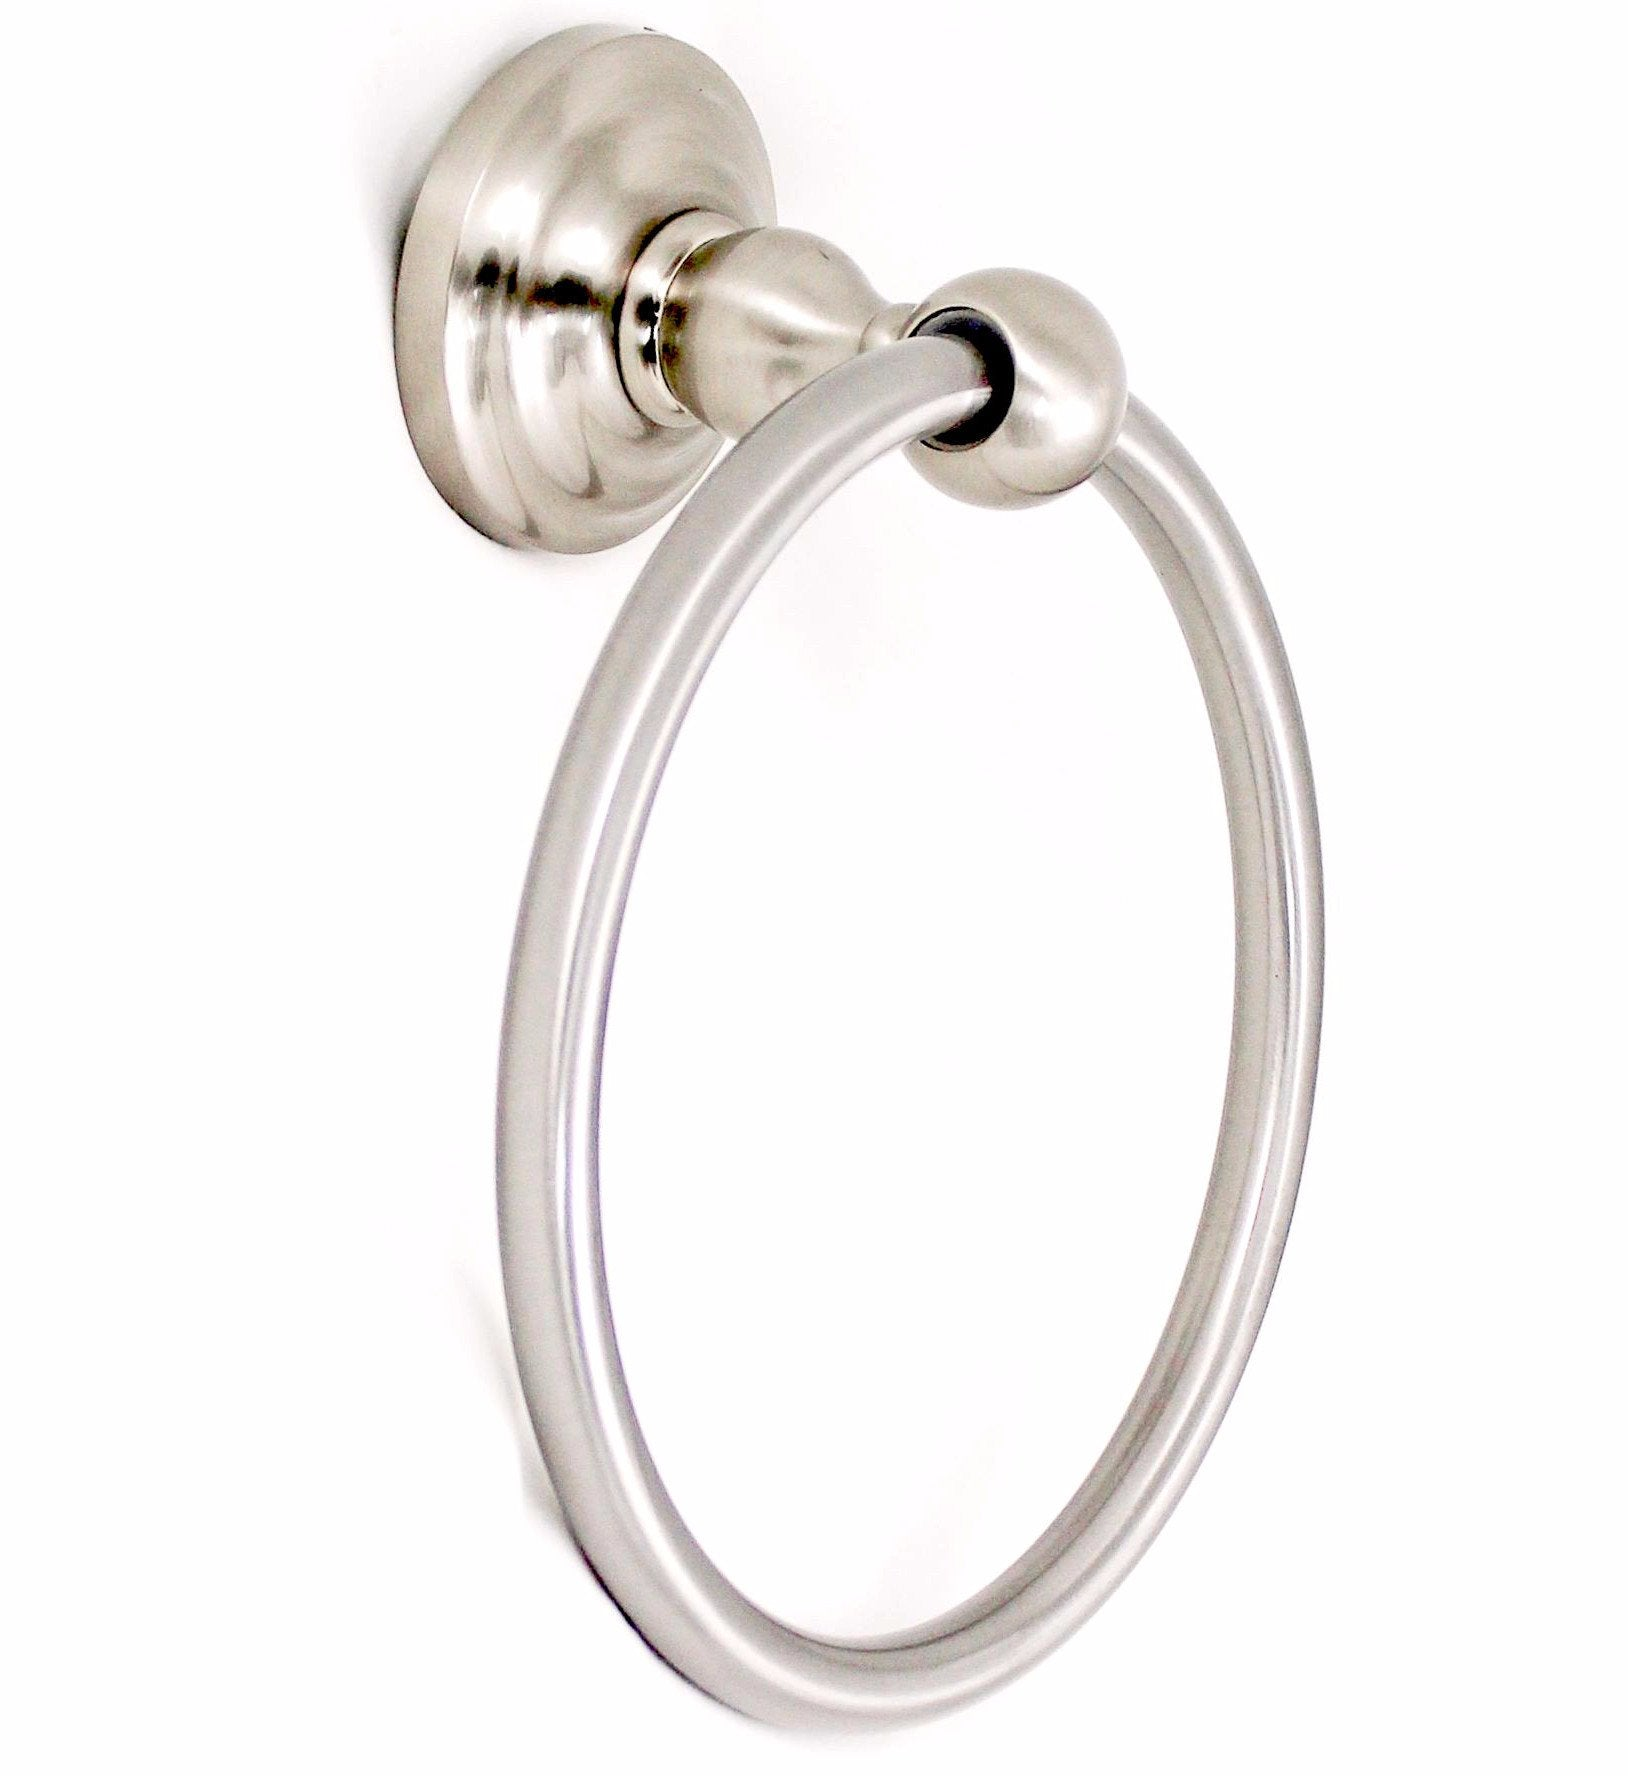 SMB16160-SN - Towel Ring in Satin Nickel, Scottsdale Collection